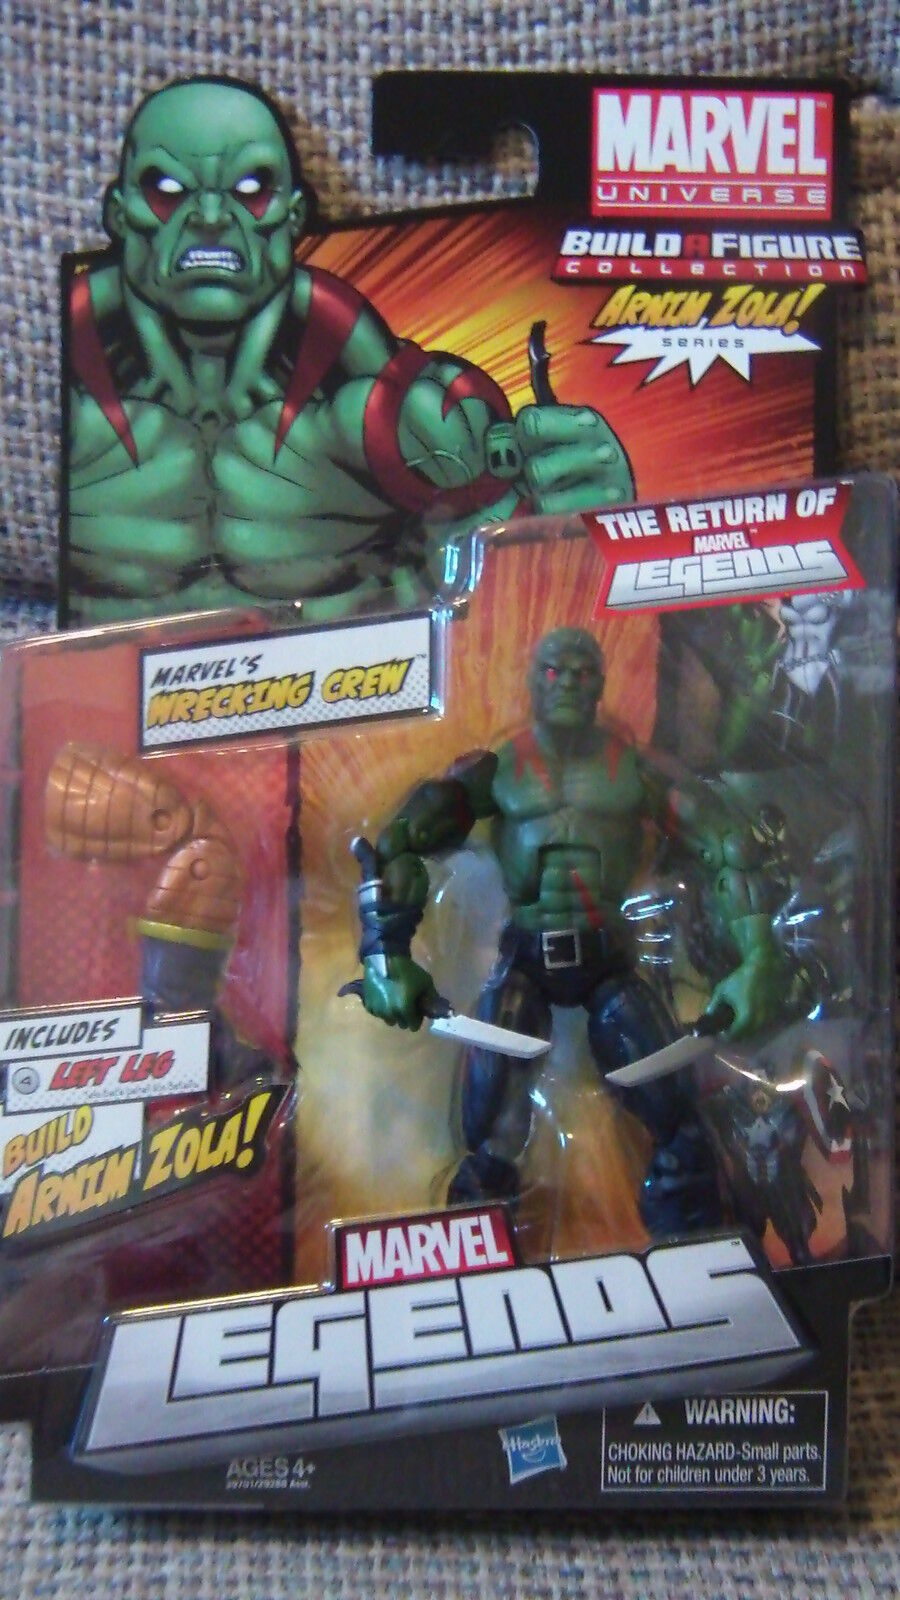 The Legend of Miracles BAF arnim Zola - drax